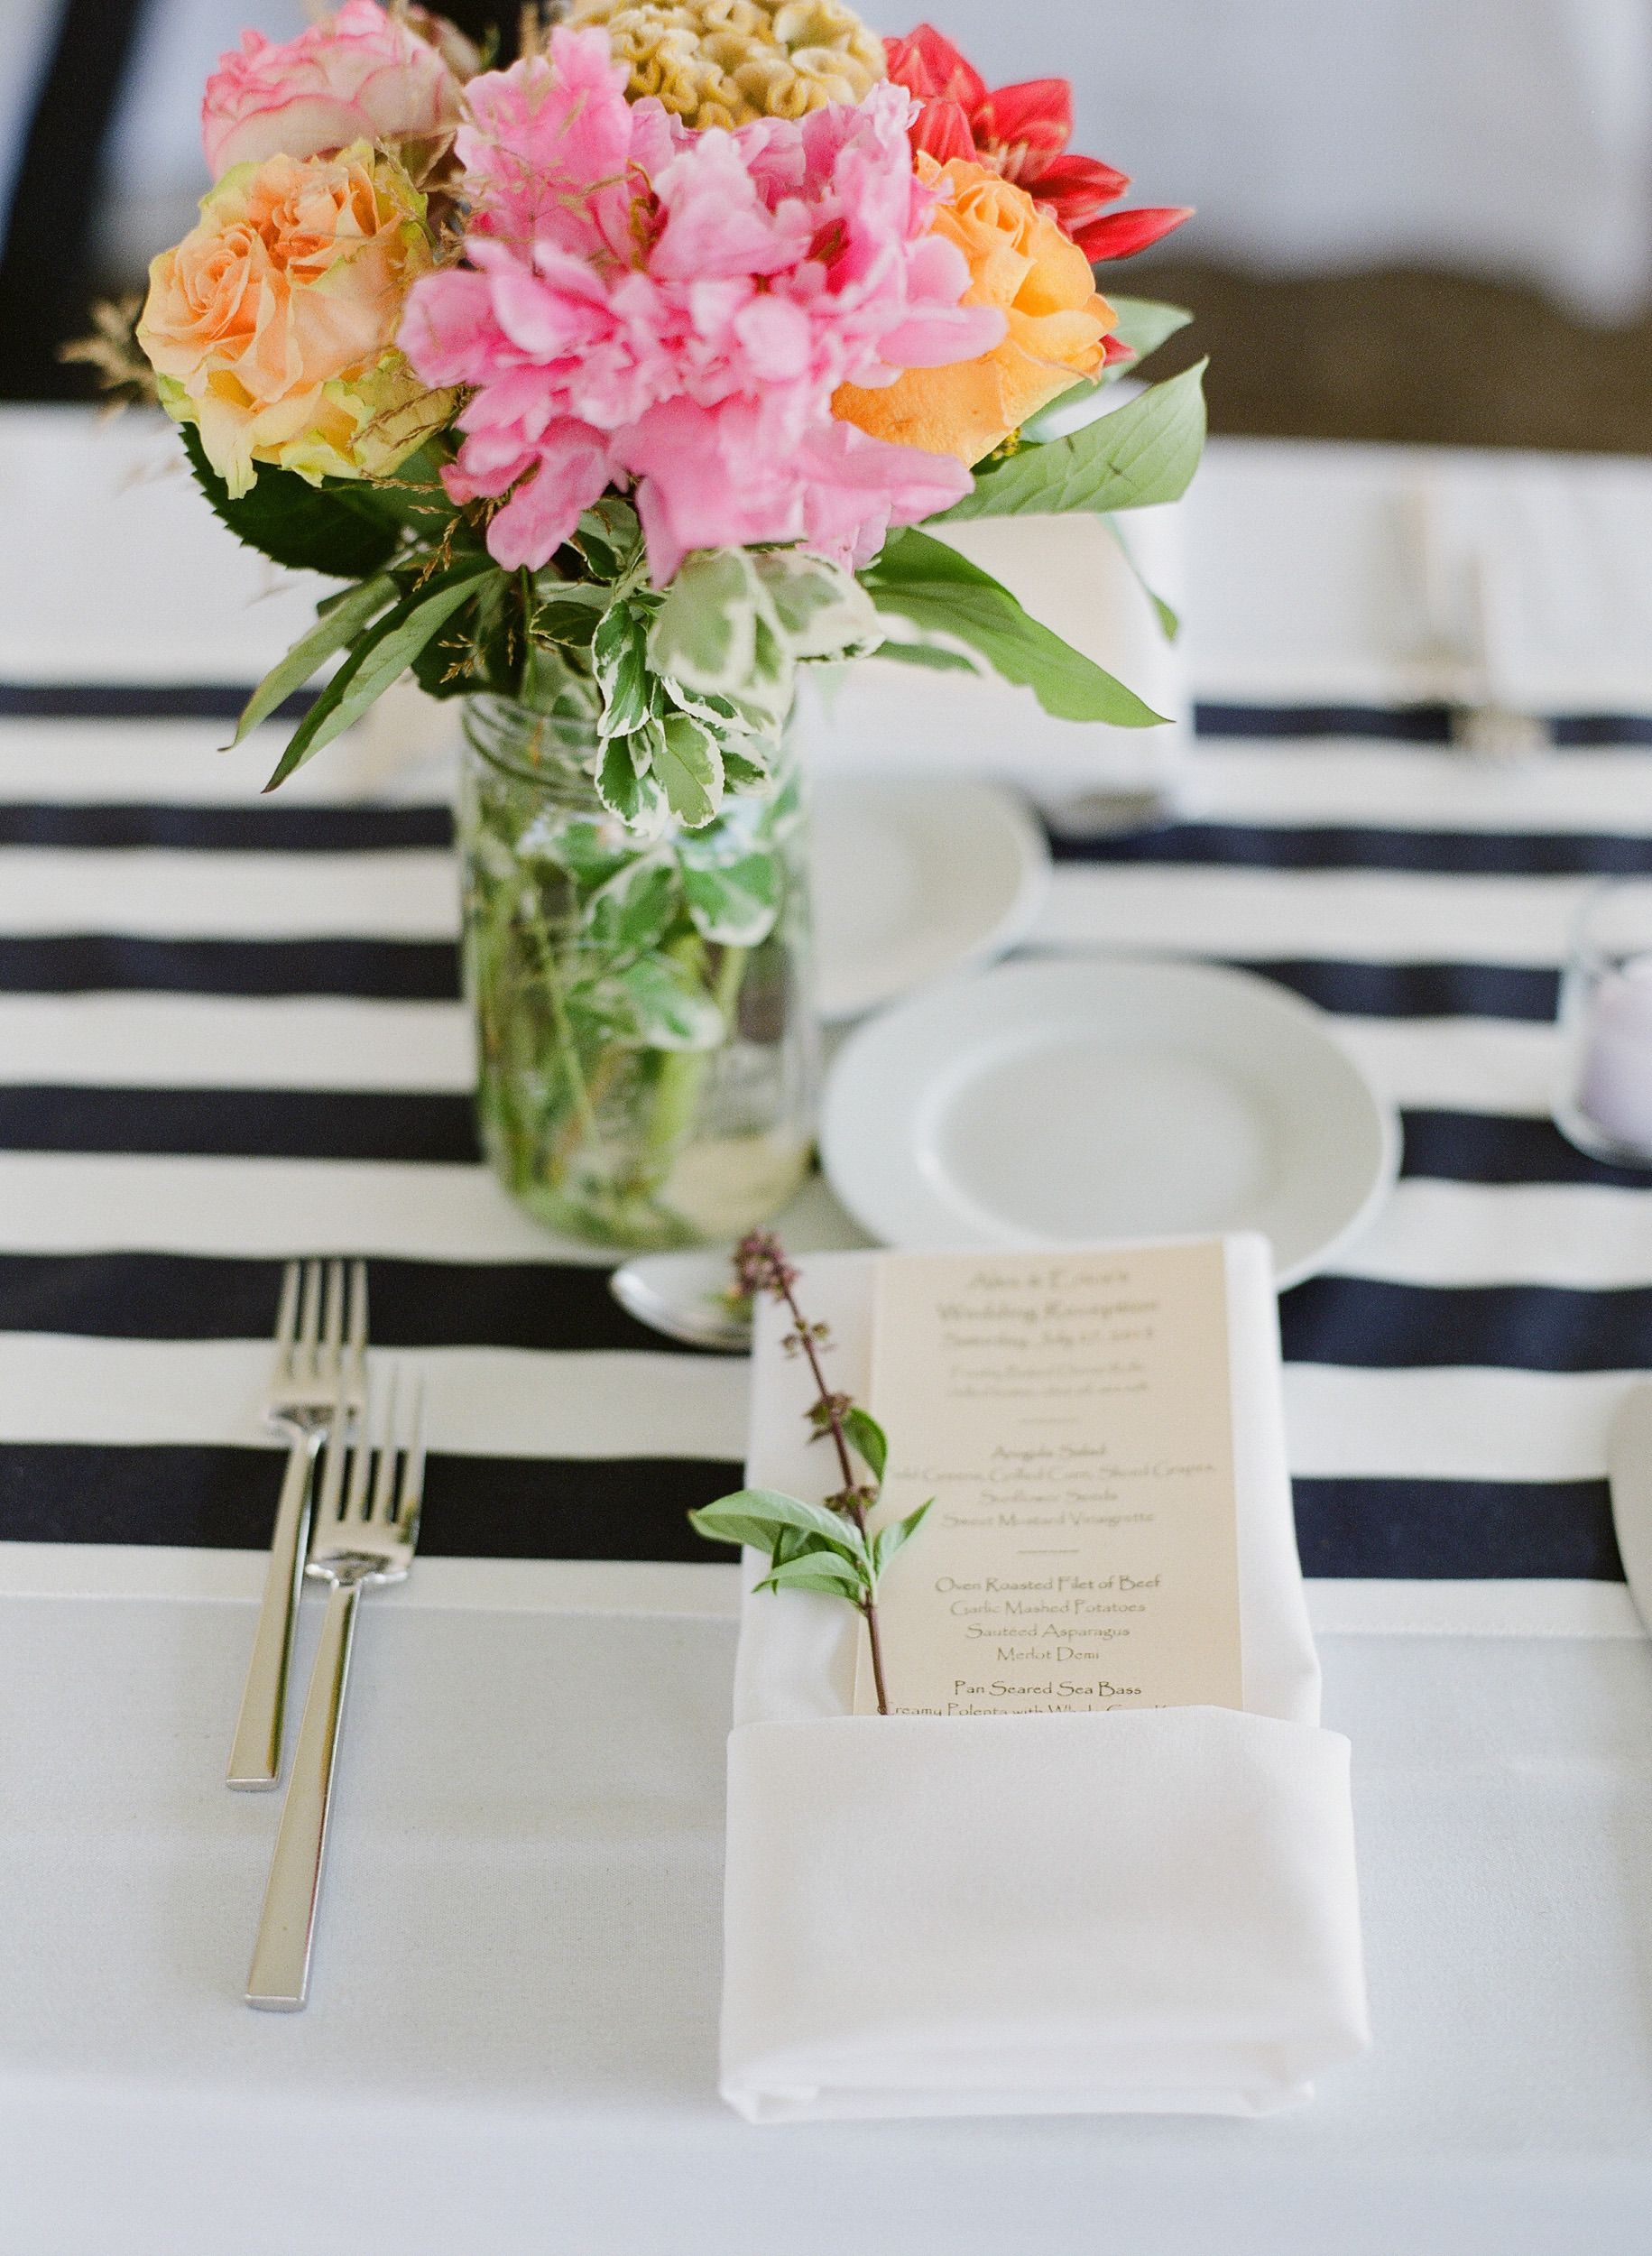 Simple napkin, menu place setting Photography: Summer Street Photography - www.summerstreetphotography.com  Read More: http://www.stylemepretty.com/2014/06/10/rustic-meets-preppy-vineyard-wedding-at-rosedale-farms-by-summer-street-photography/  #LGLimitlessDesign #Contest